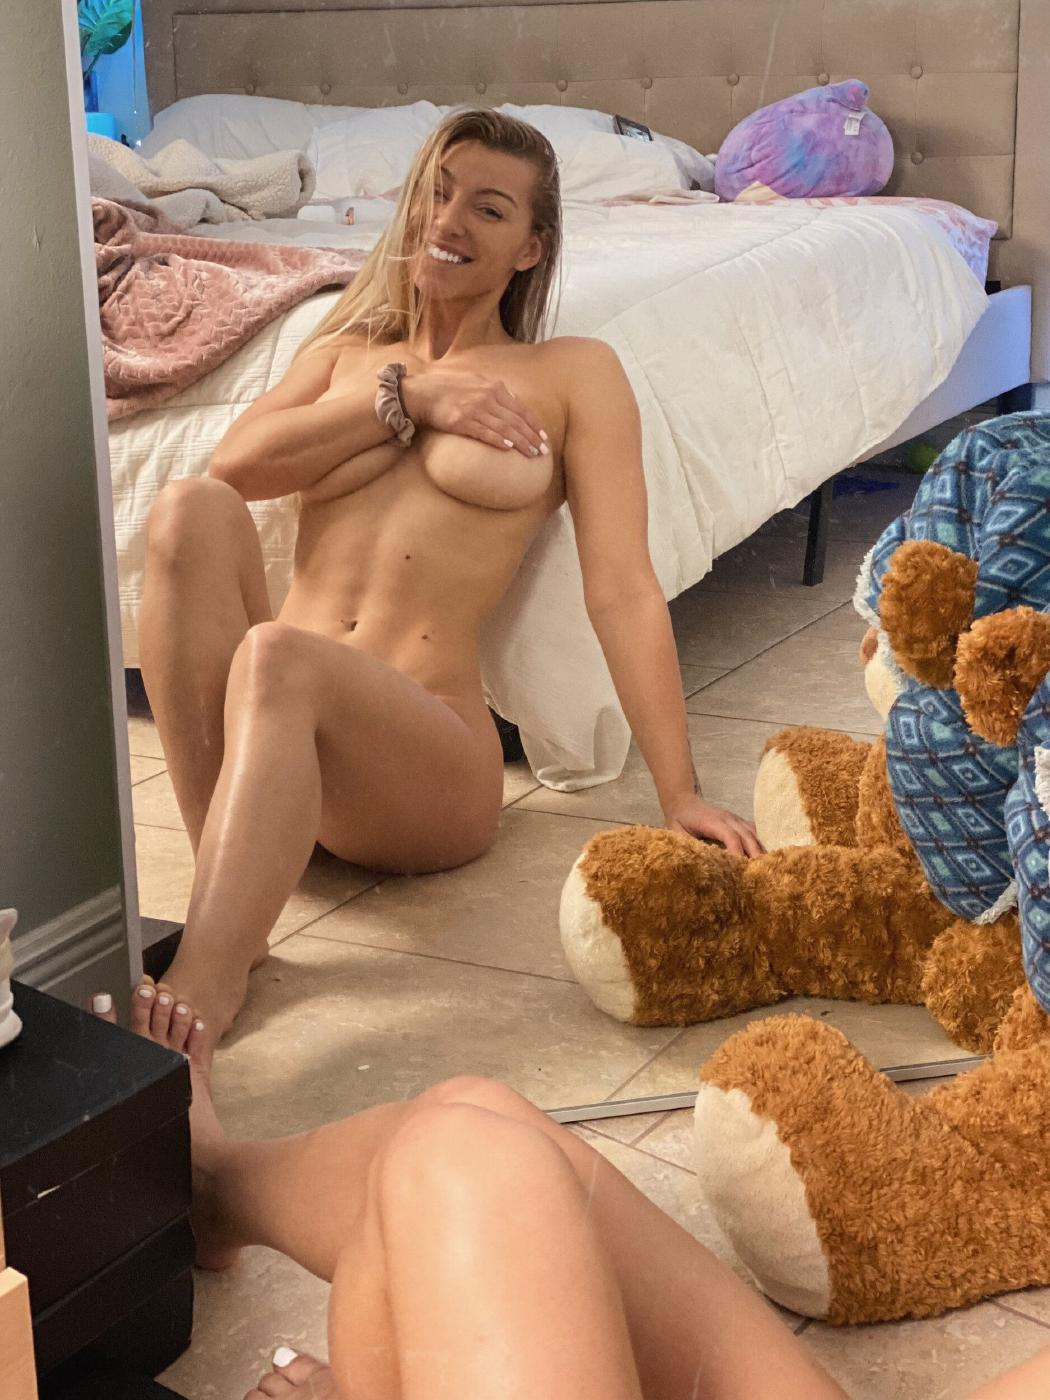 Therealbrittfit Nude Onlyfans Picture Set Leaked 0006